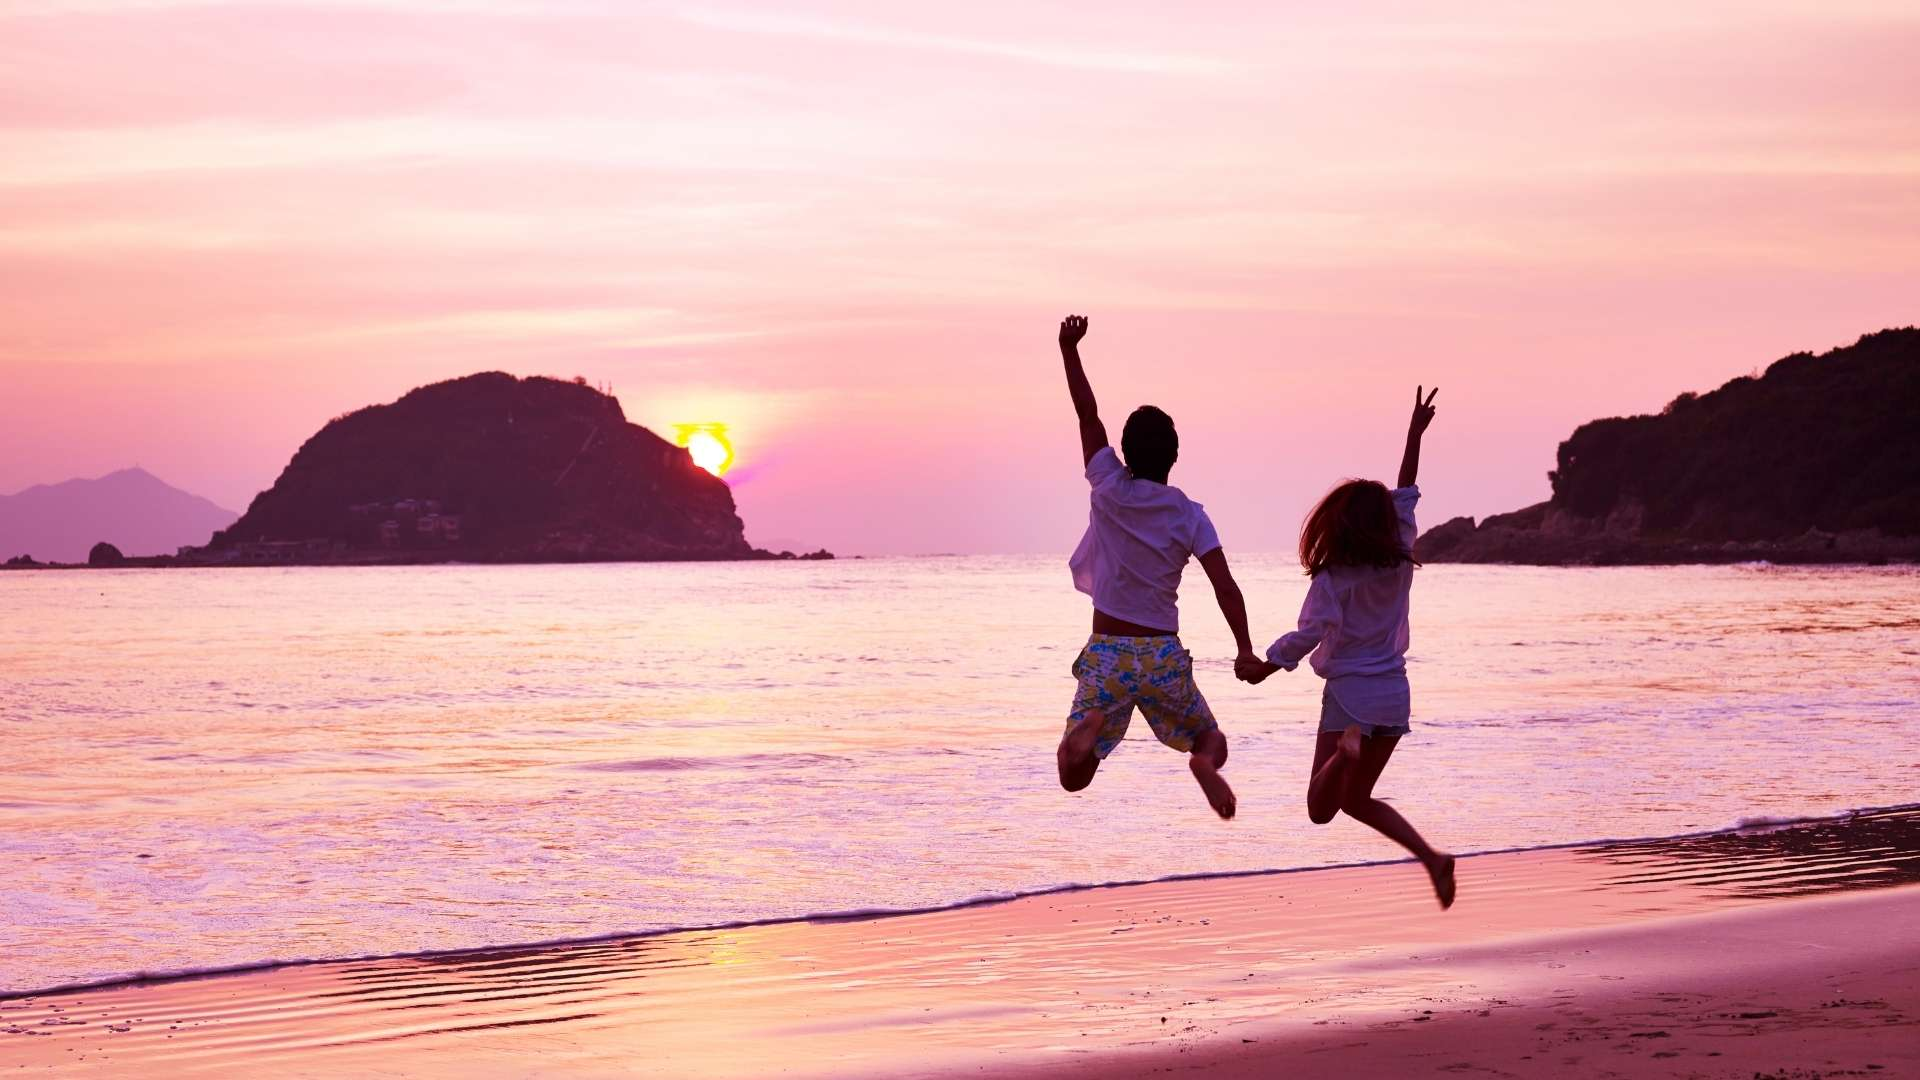 Couple_Sunset_Jumping_Freedom_1920x1080.jpg